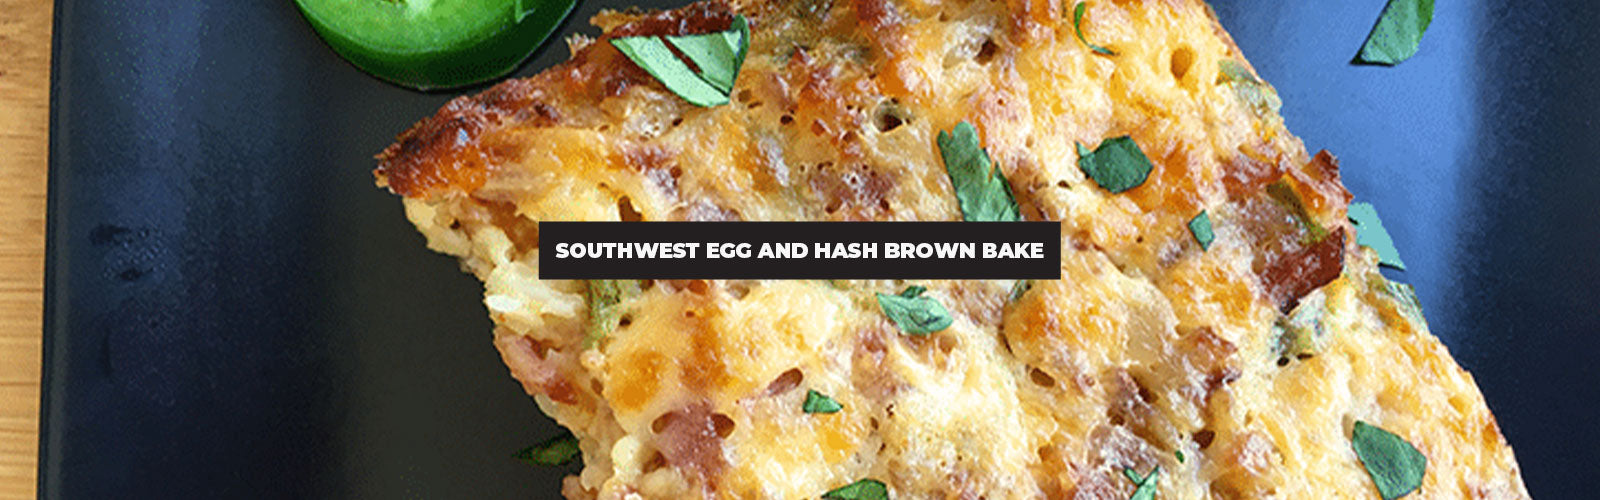 Southwest Egg and Hash Brown Bake